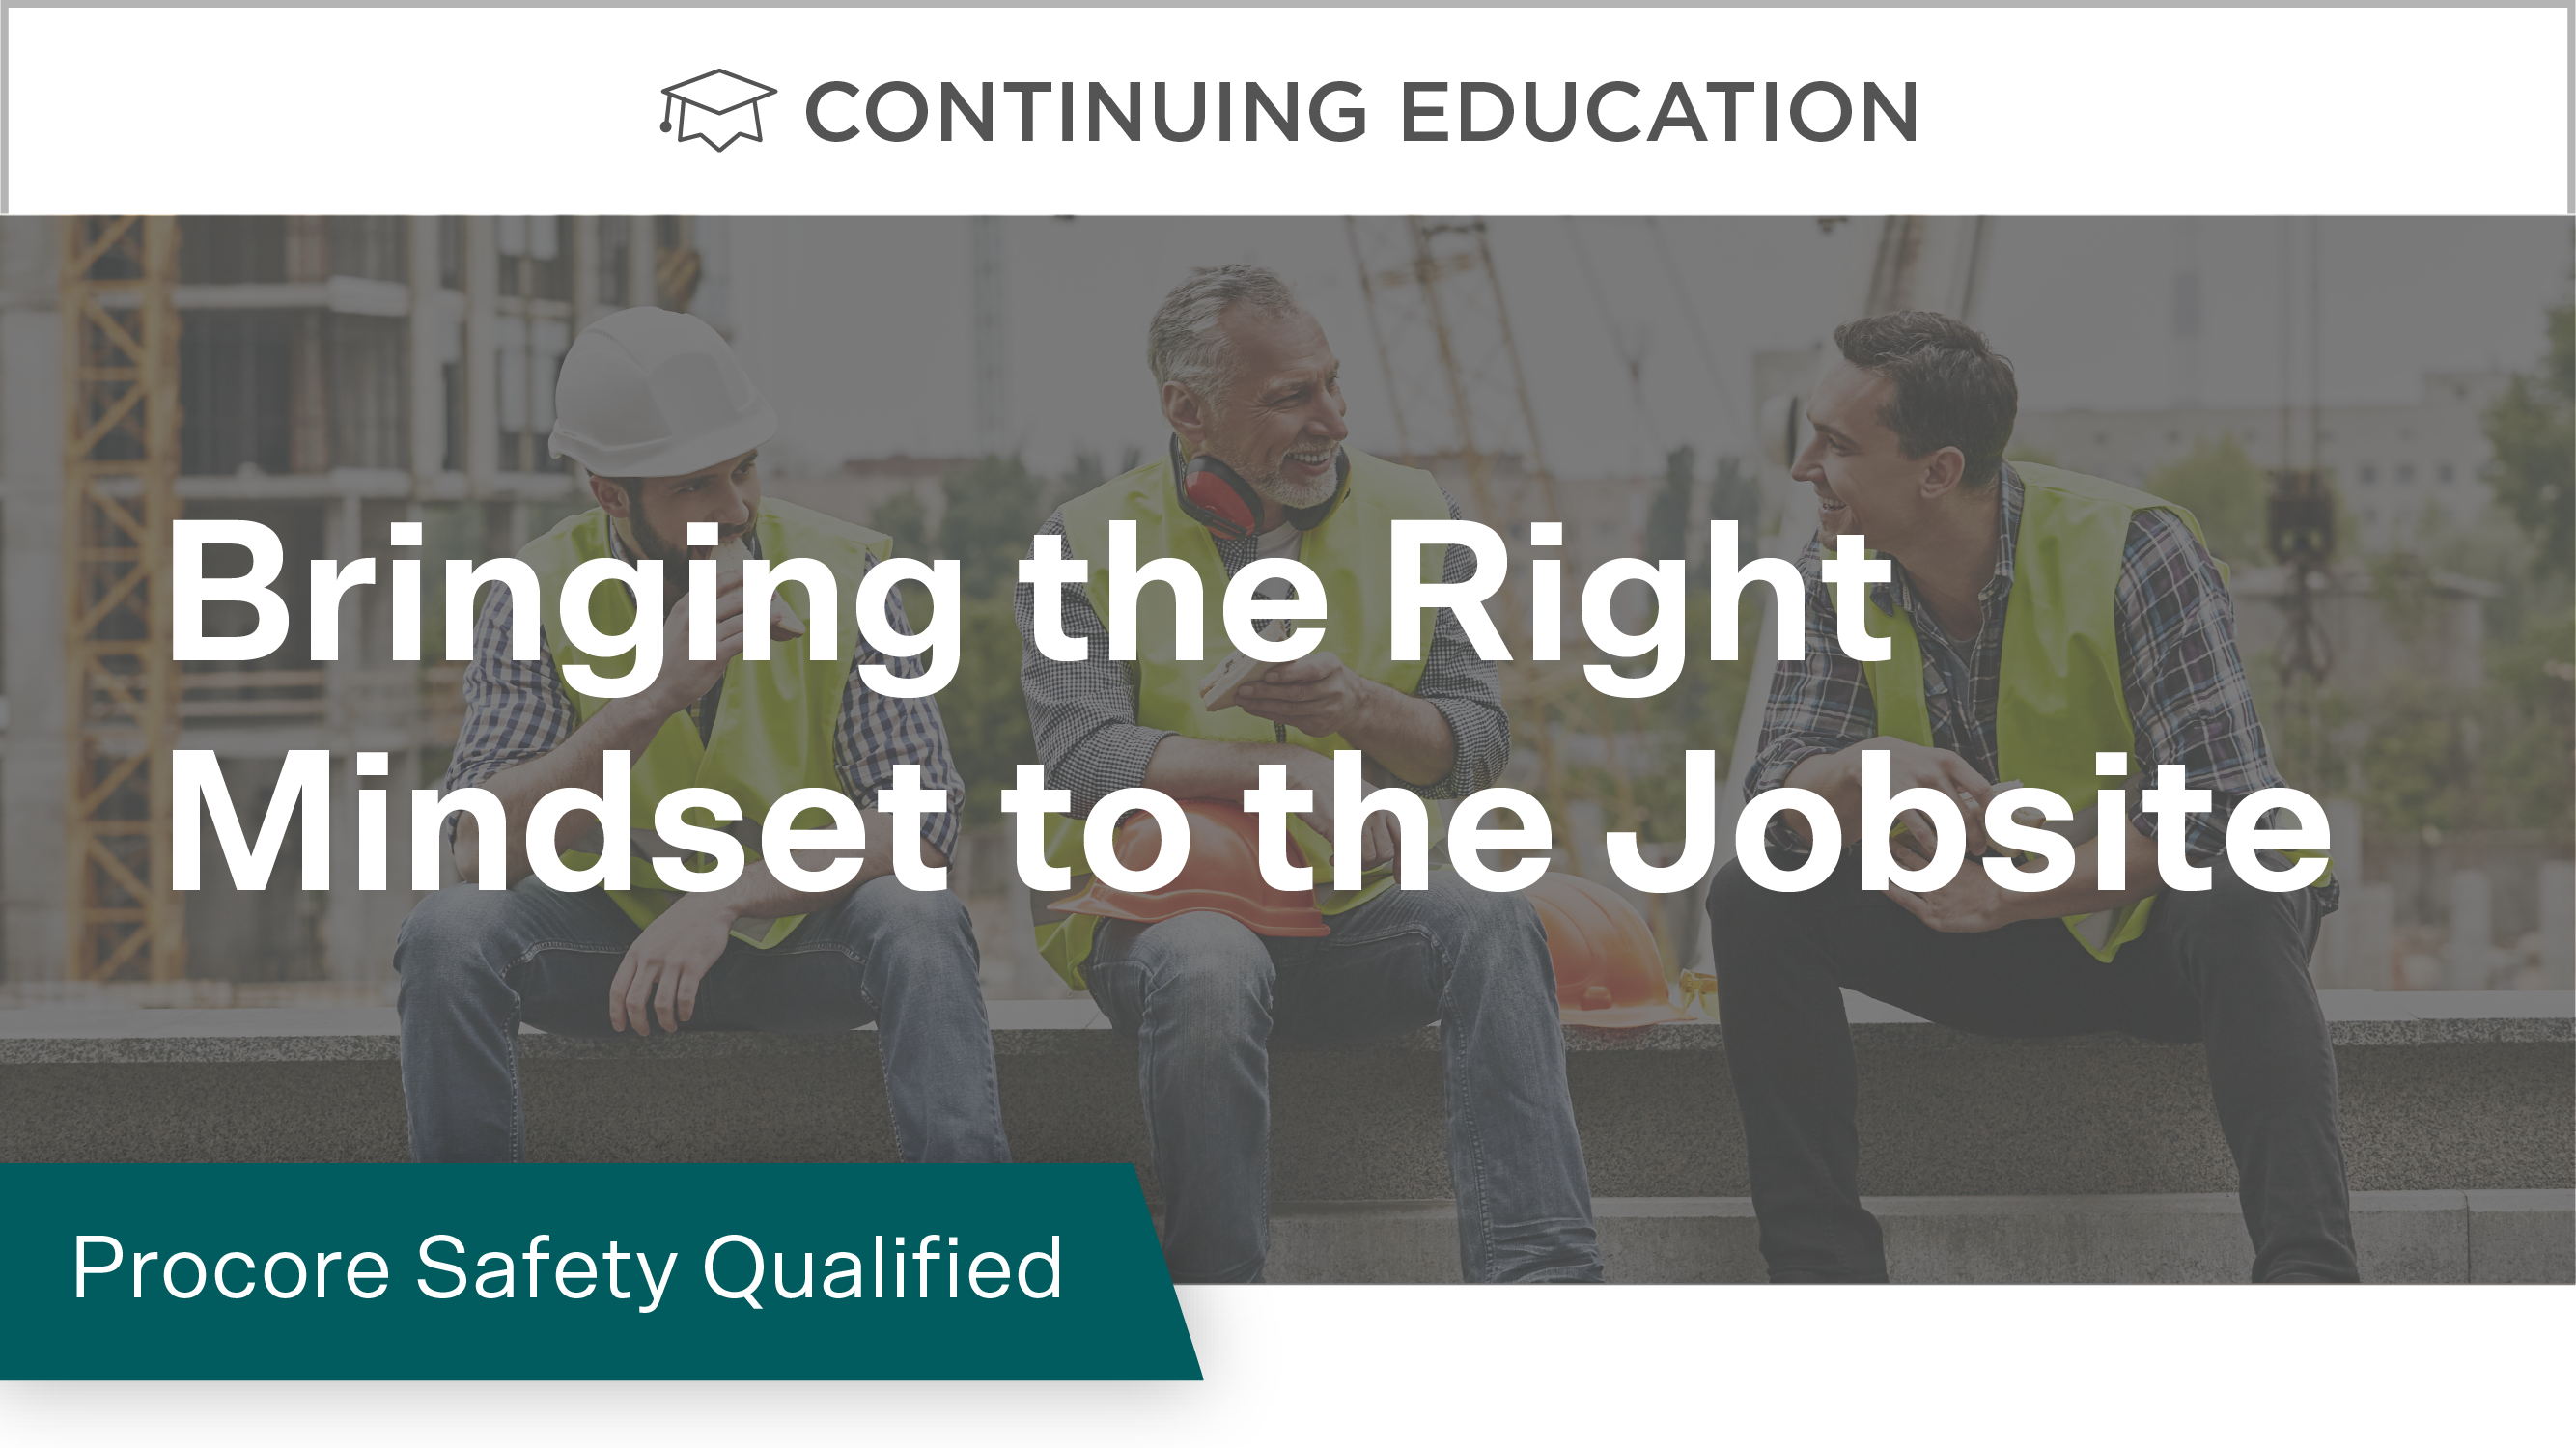 Procore Safety Qualified: Bringing the Right Mindset to the Jobsite